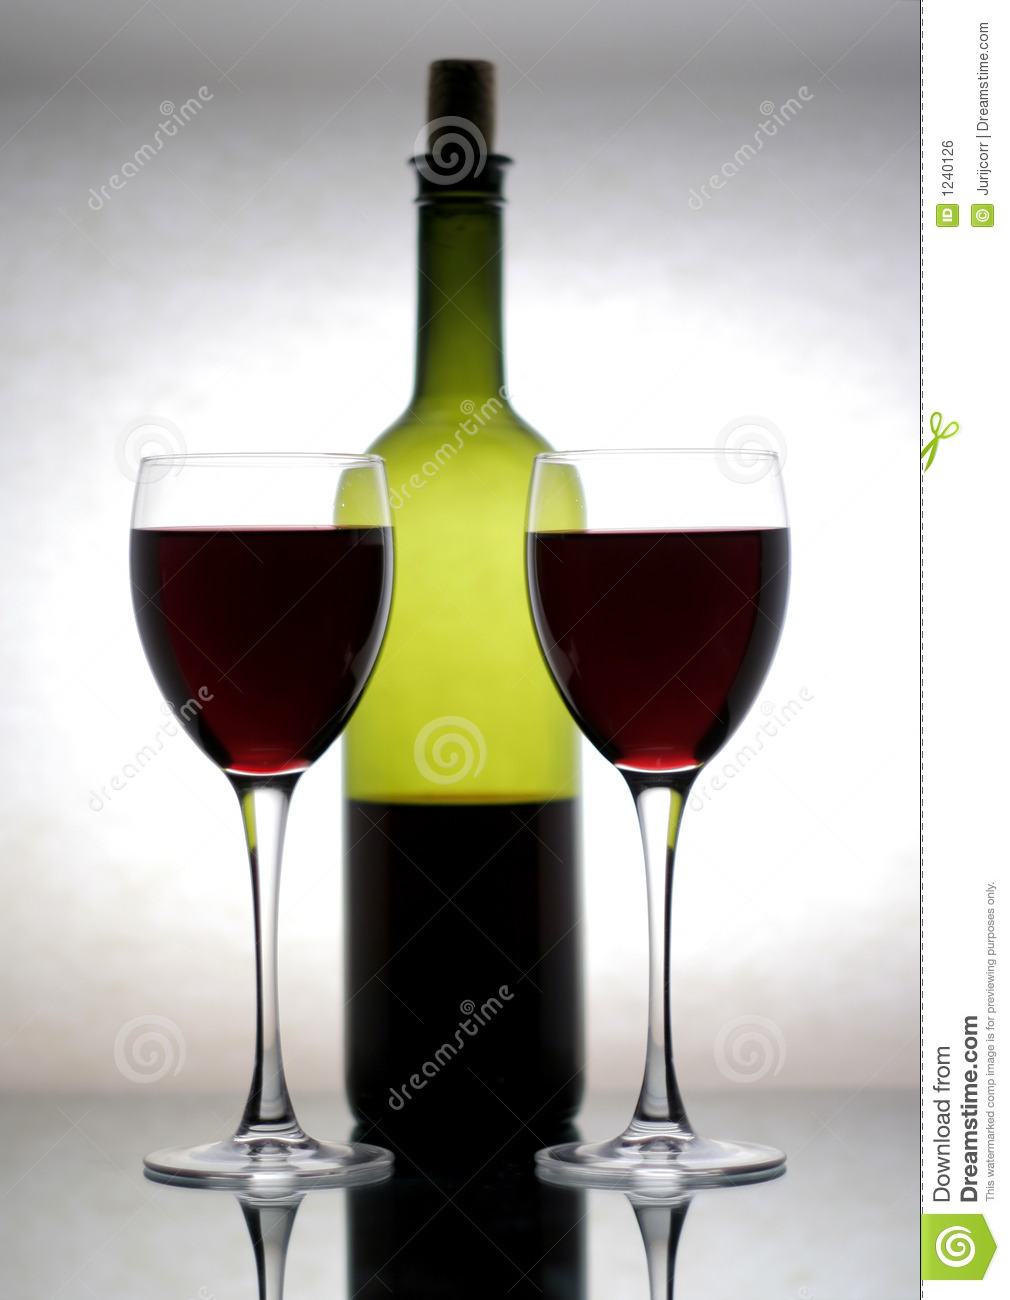 bottle of wine and two glasses royalty free stock image image 1240126. Black Bedroom Furniture Sets. Home Design Ideas